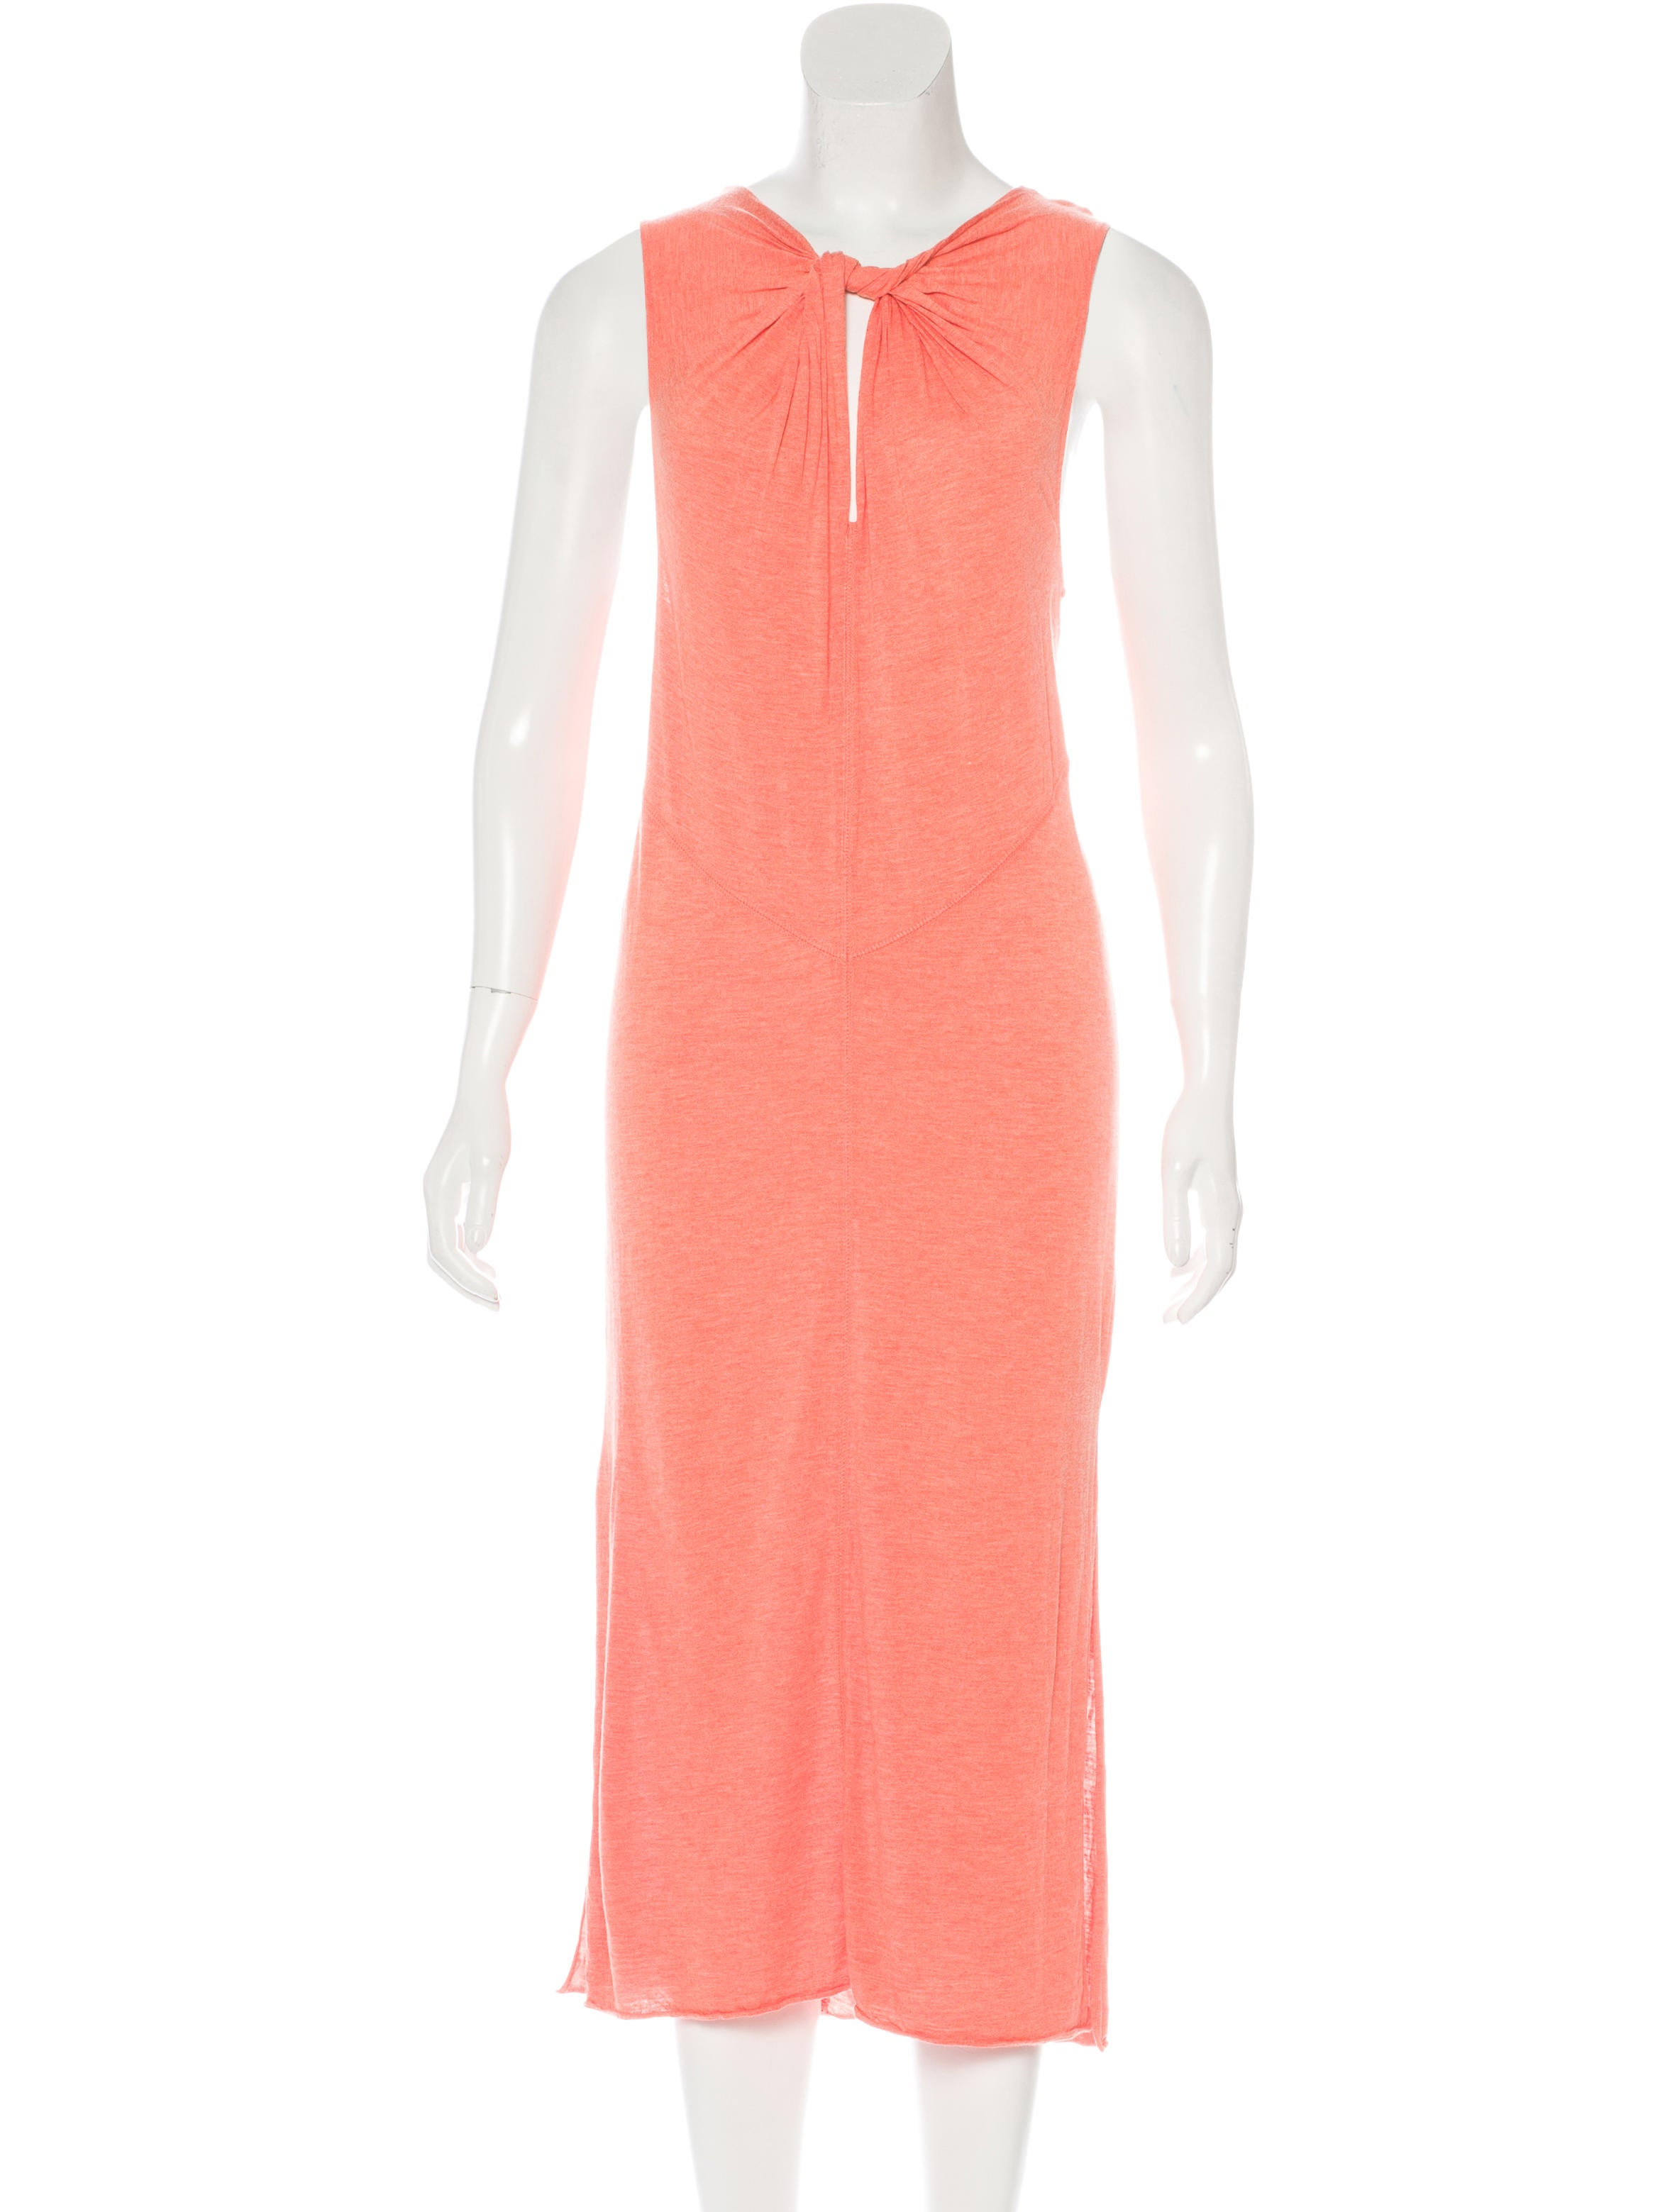 Derek lam 10 crosby sleeveless midi dress clothing for Derek lam 10 crosby shirt dress